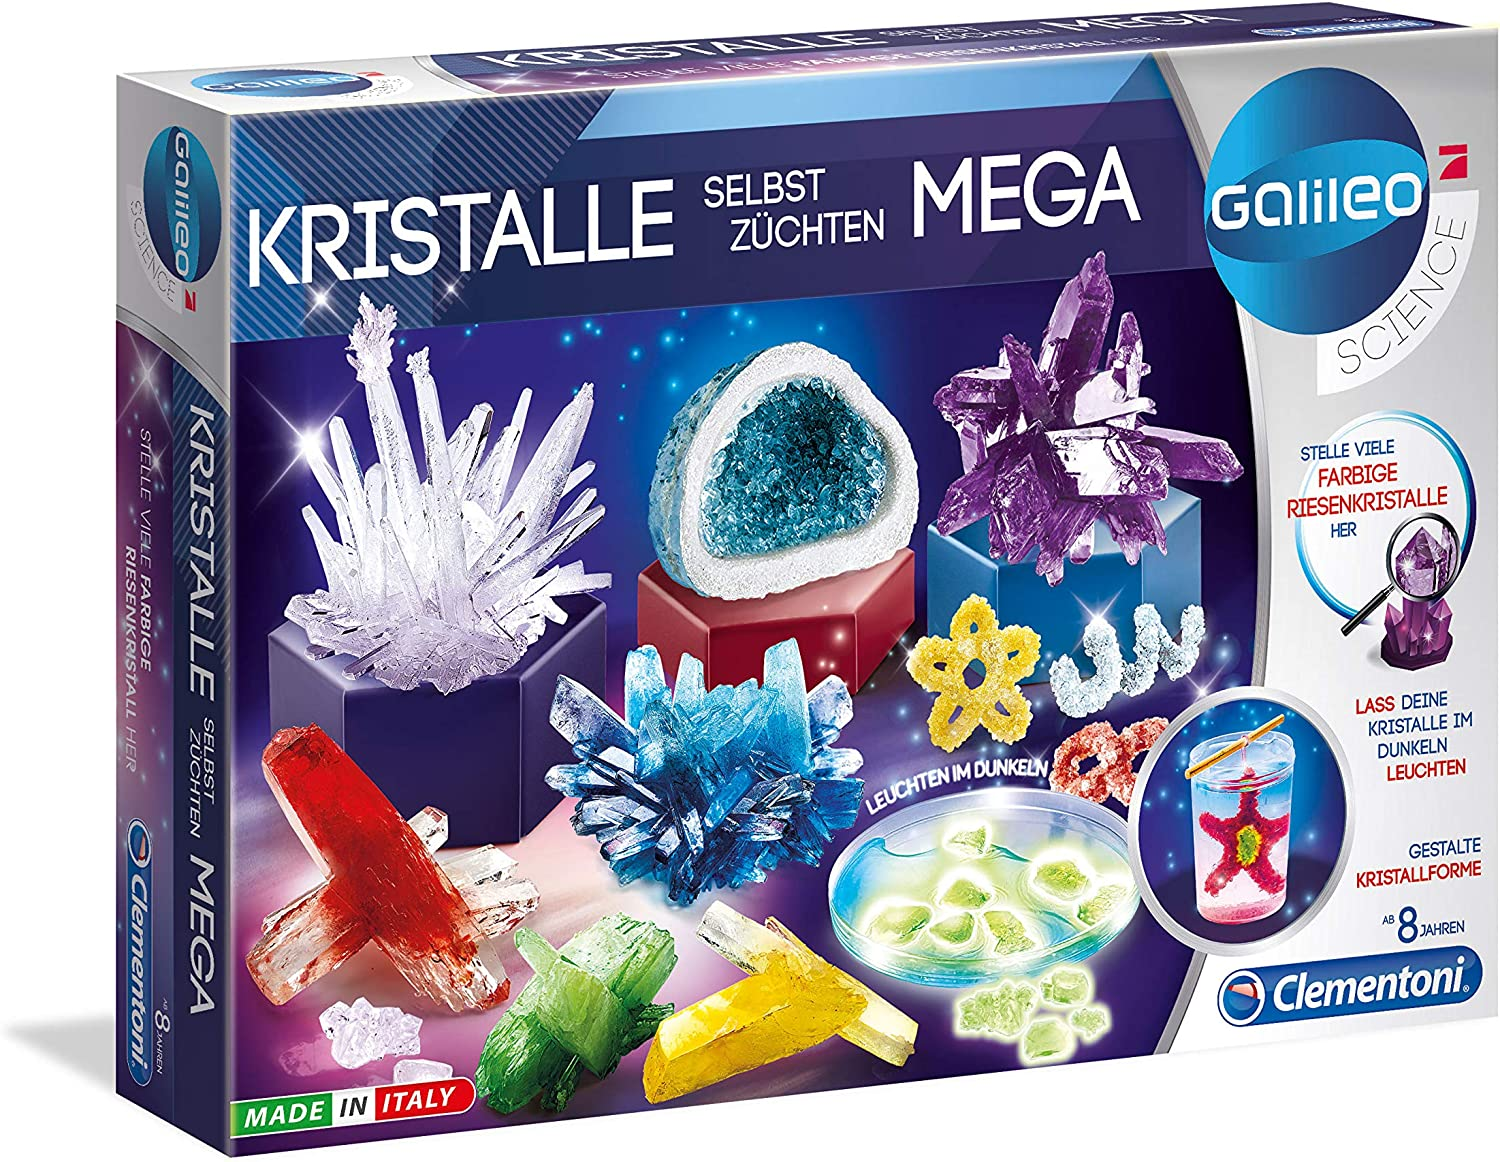 Phosphorescent Crystals Experiment Box for Little Scientists Toy for Children Aged 8 Years and Above Colourful Experiments for Nursery Clementoni 69487 Galileo Science